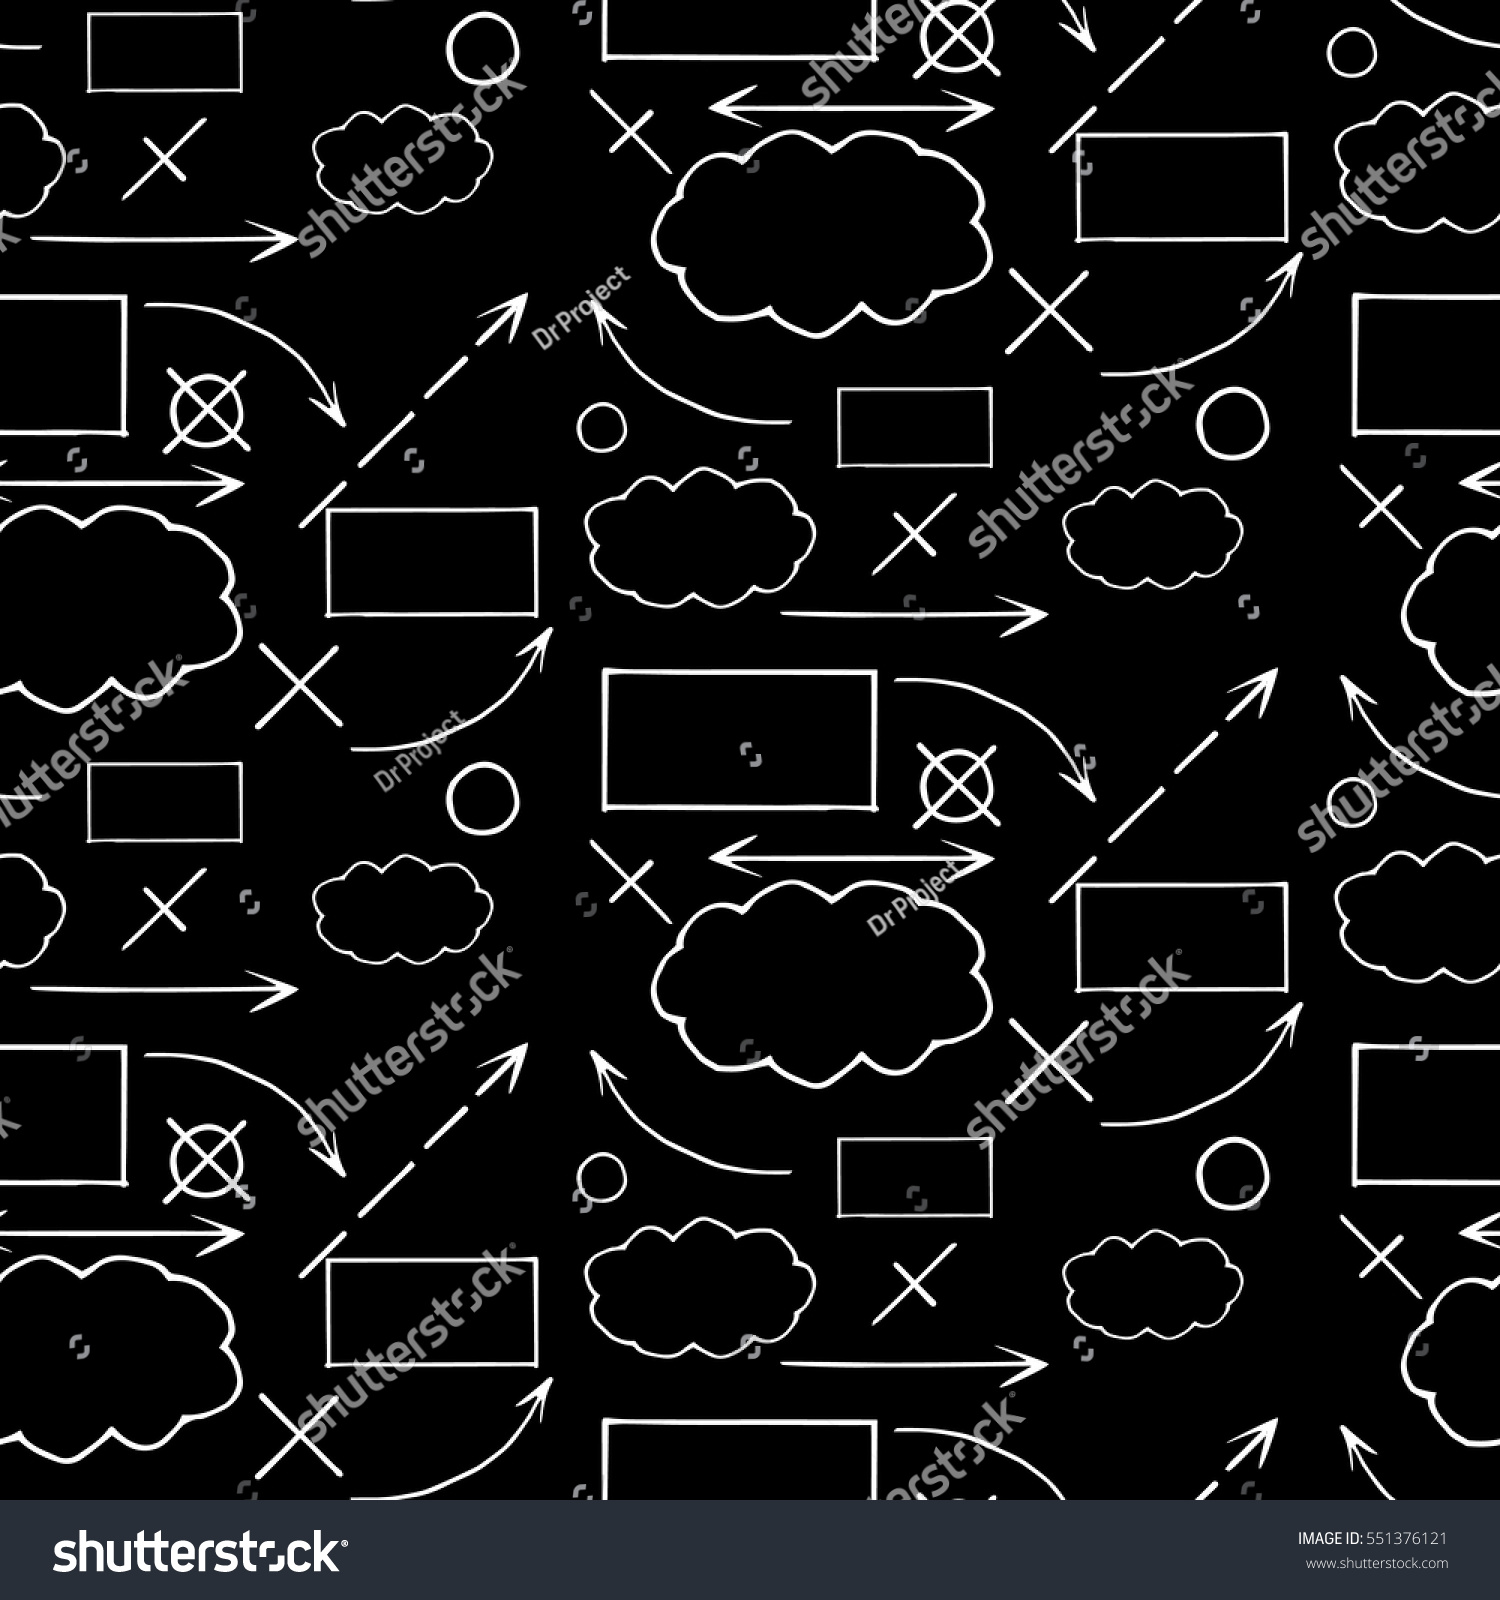 Architectural Engineering Shapes Signs Symbols Vector Stock Vector